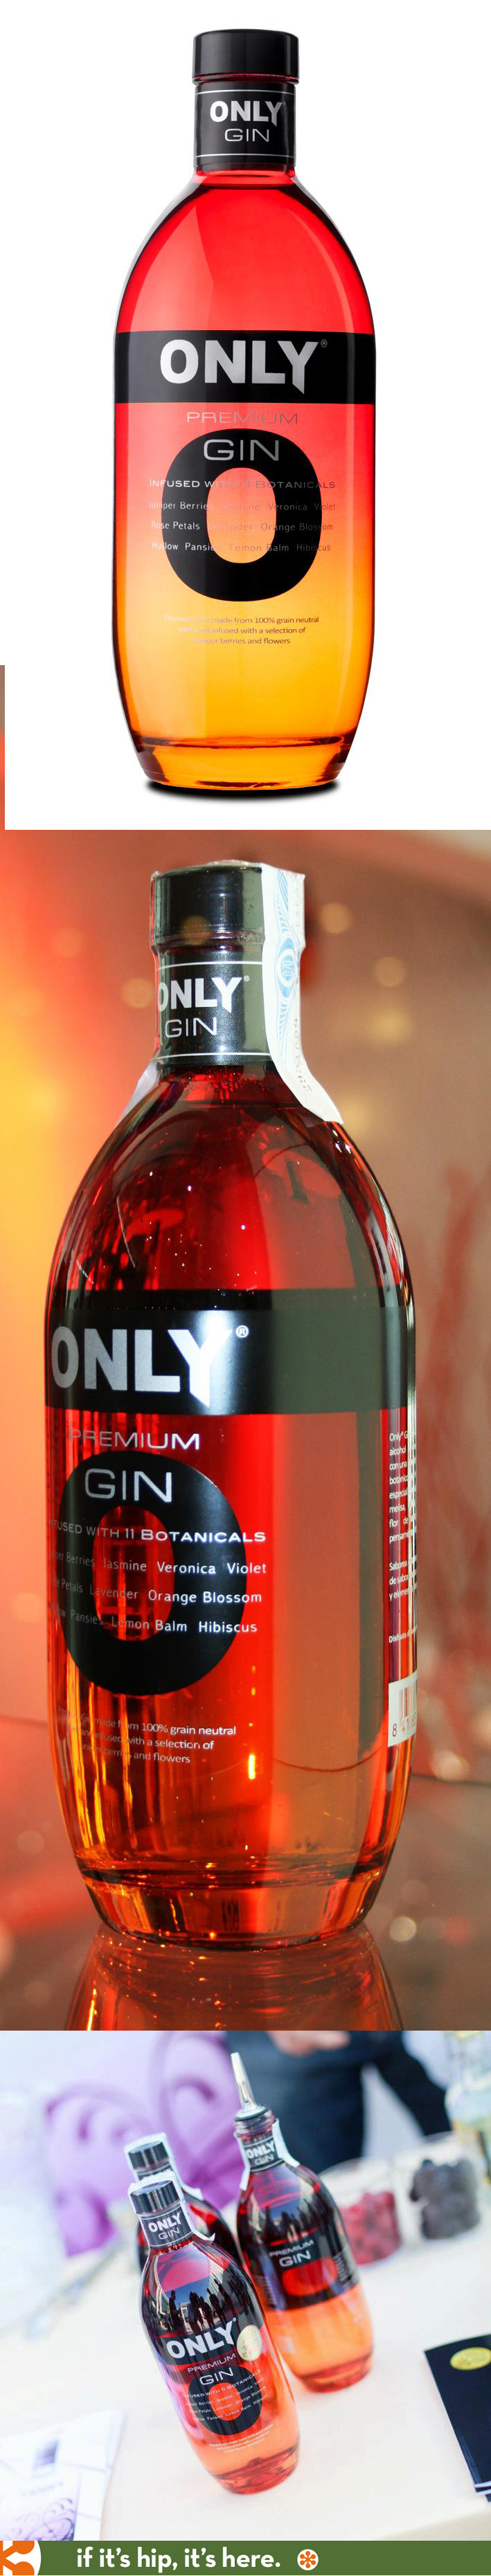 Only Gin Pd Gin Brands Gin Bottles Gin Drinks